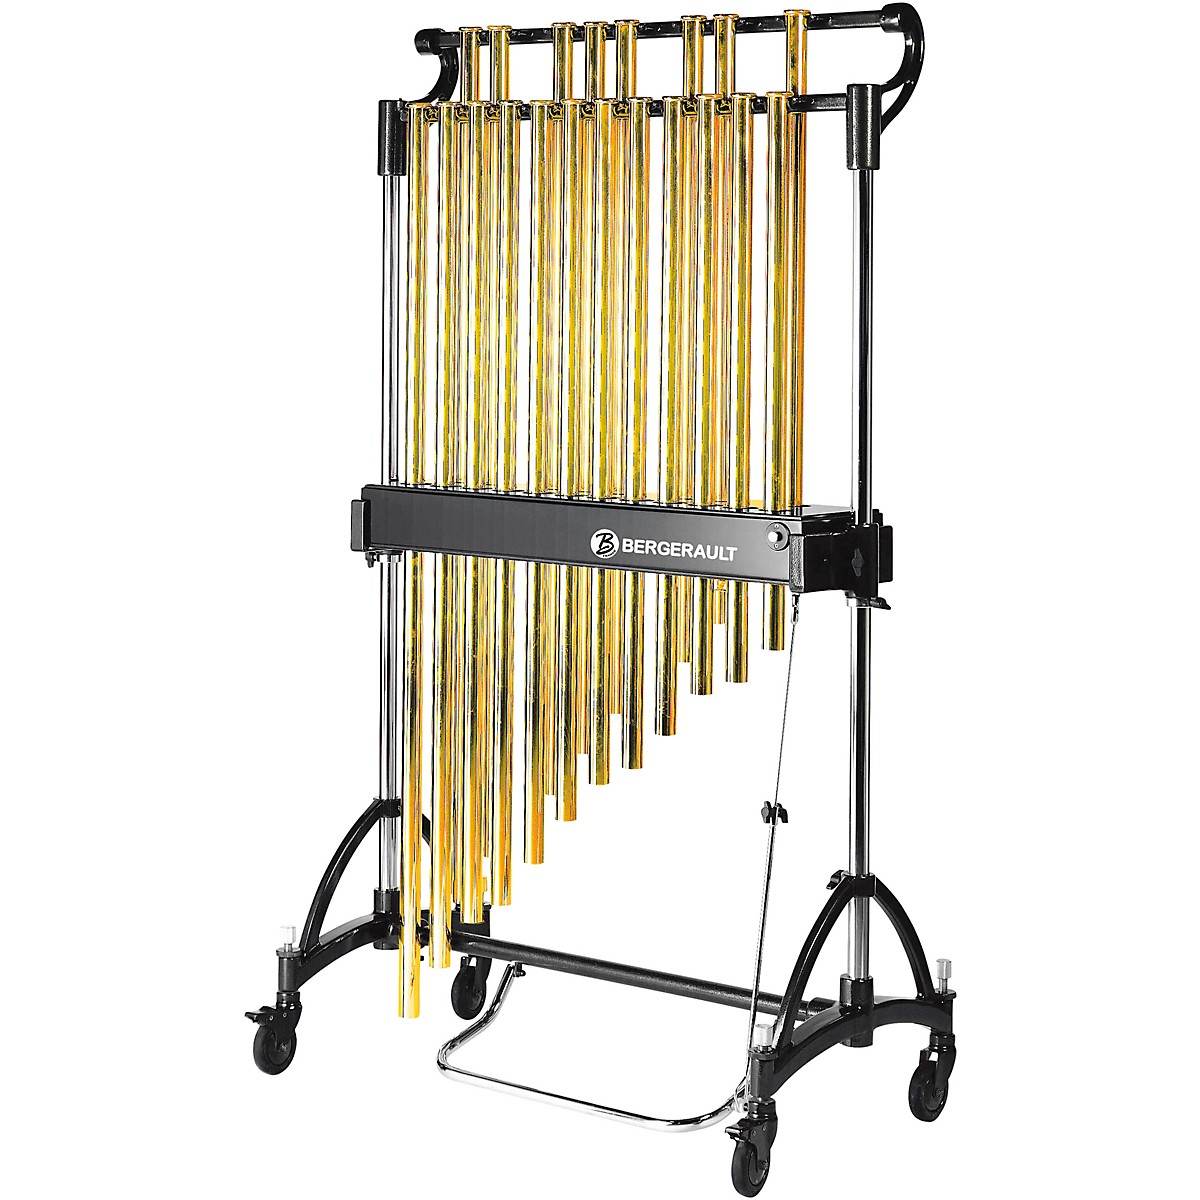 Bergerault Concert Series Chimes, 1.6 Octave (C5-G6), Gold Tubes